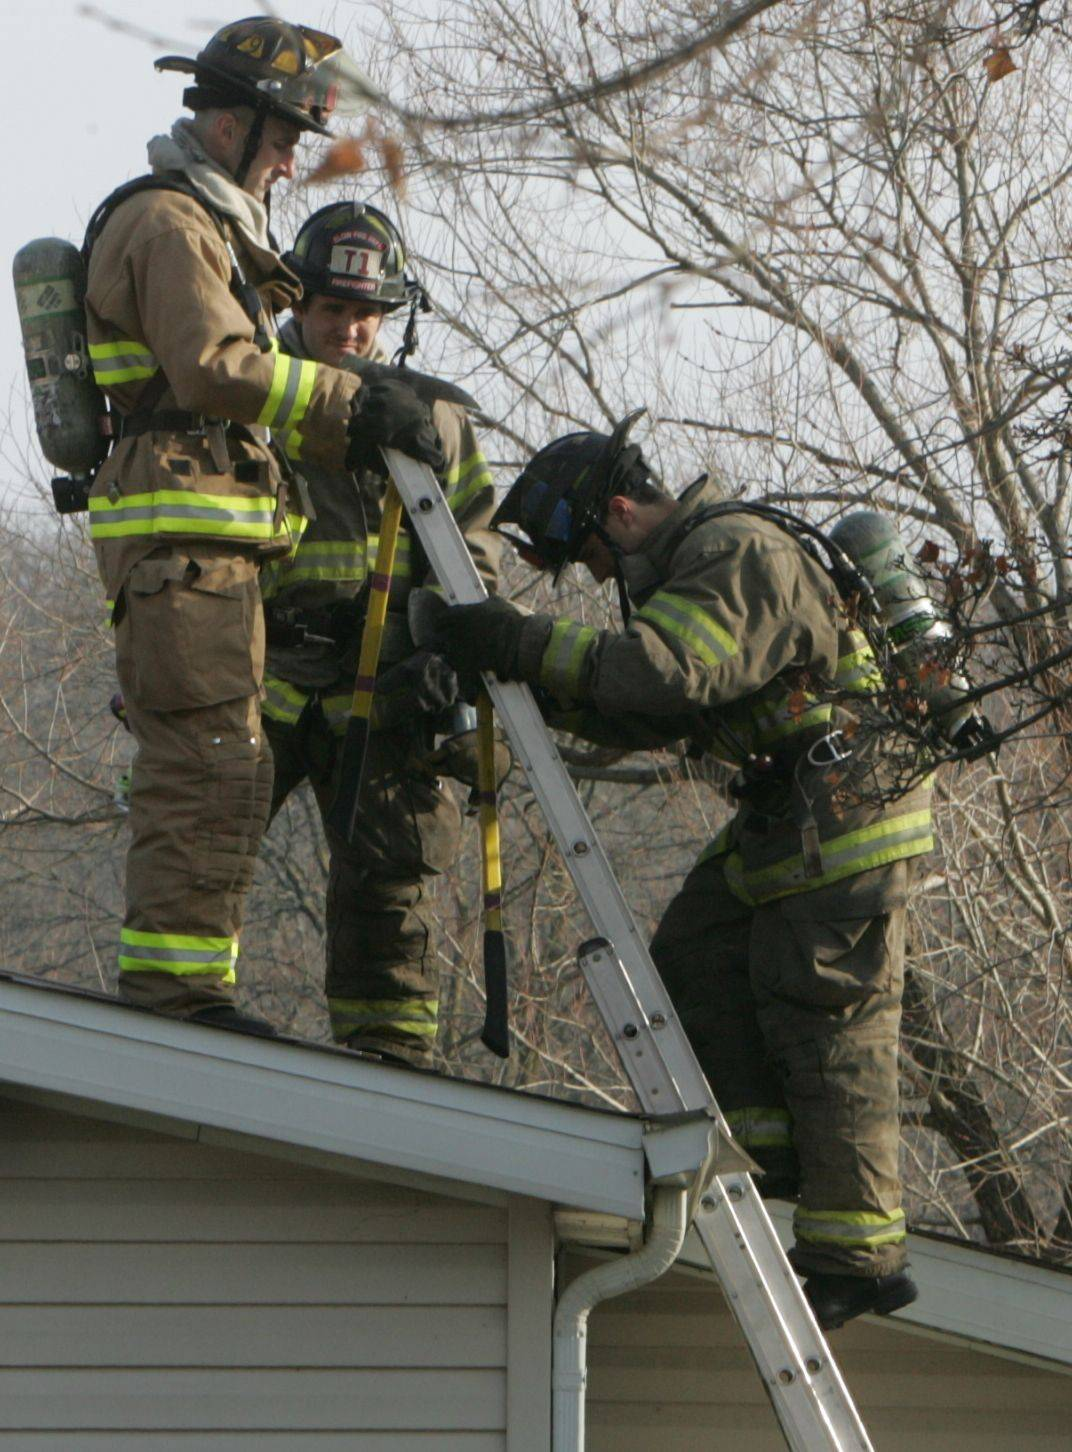 Firefighters and police officers injured on the job throughout Illinois are often entitled to lifetime health insurance benefits for themselves and their families even if they are able to find work elsewhere.